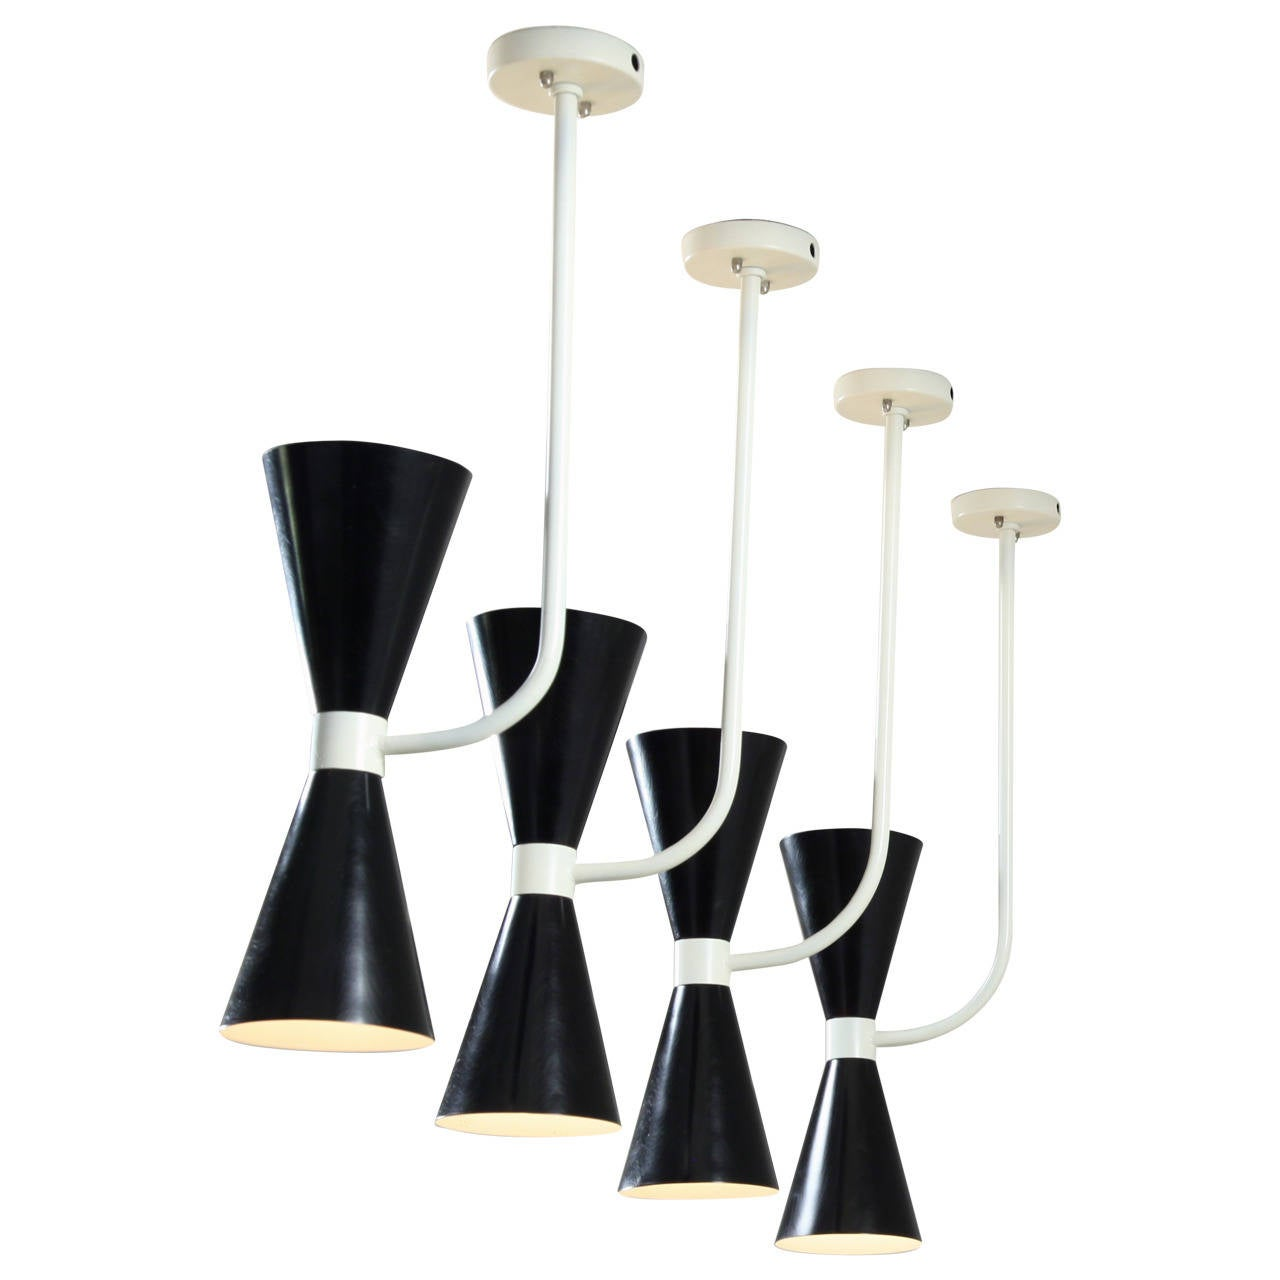 Set of six italian metal diabolo wall or pendant lamps in stilnovo set of six italian metal diabolo wall or pendant lamps in stilnovo manner 1950s for mozeypictures Image collections